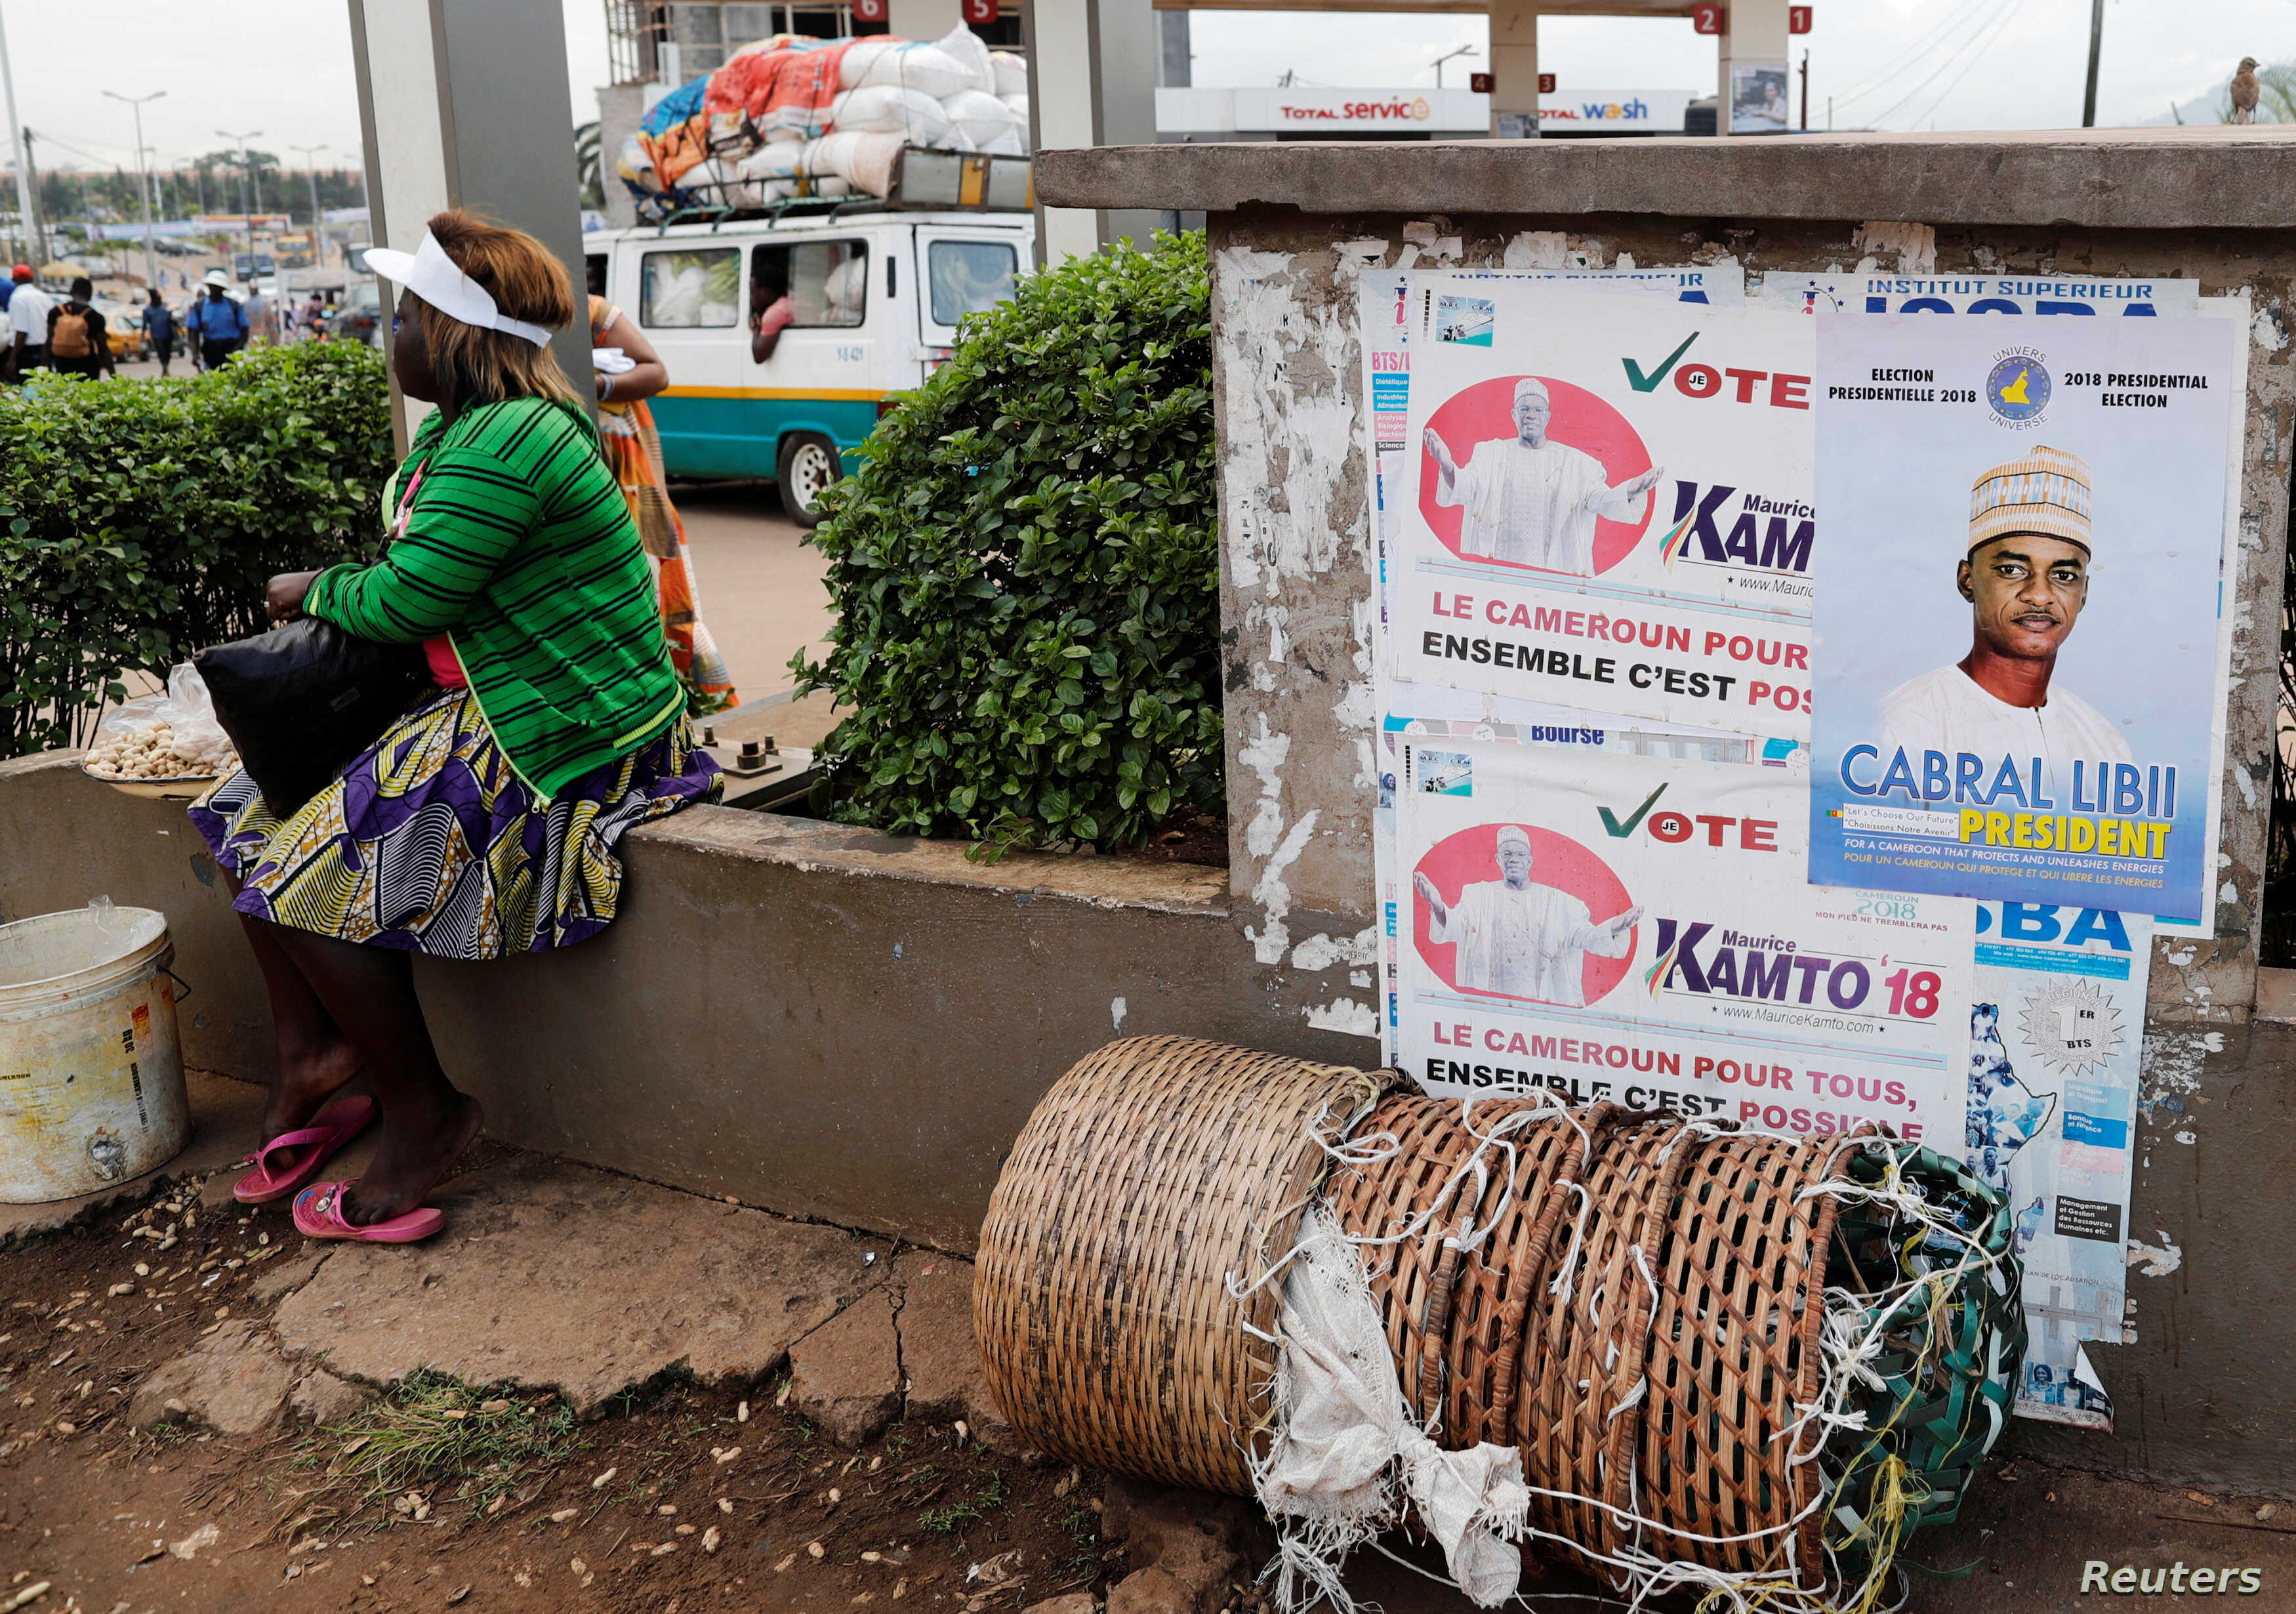 A street vendor sits near placards of presidential candidates Cabral Libii (R) of Univers party and Maurice Kamto of the Movement for Renaissance, in Yaounde, Cameroon, Oct. 5, 2018.